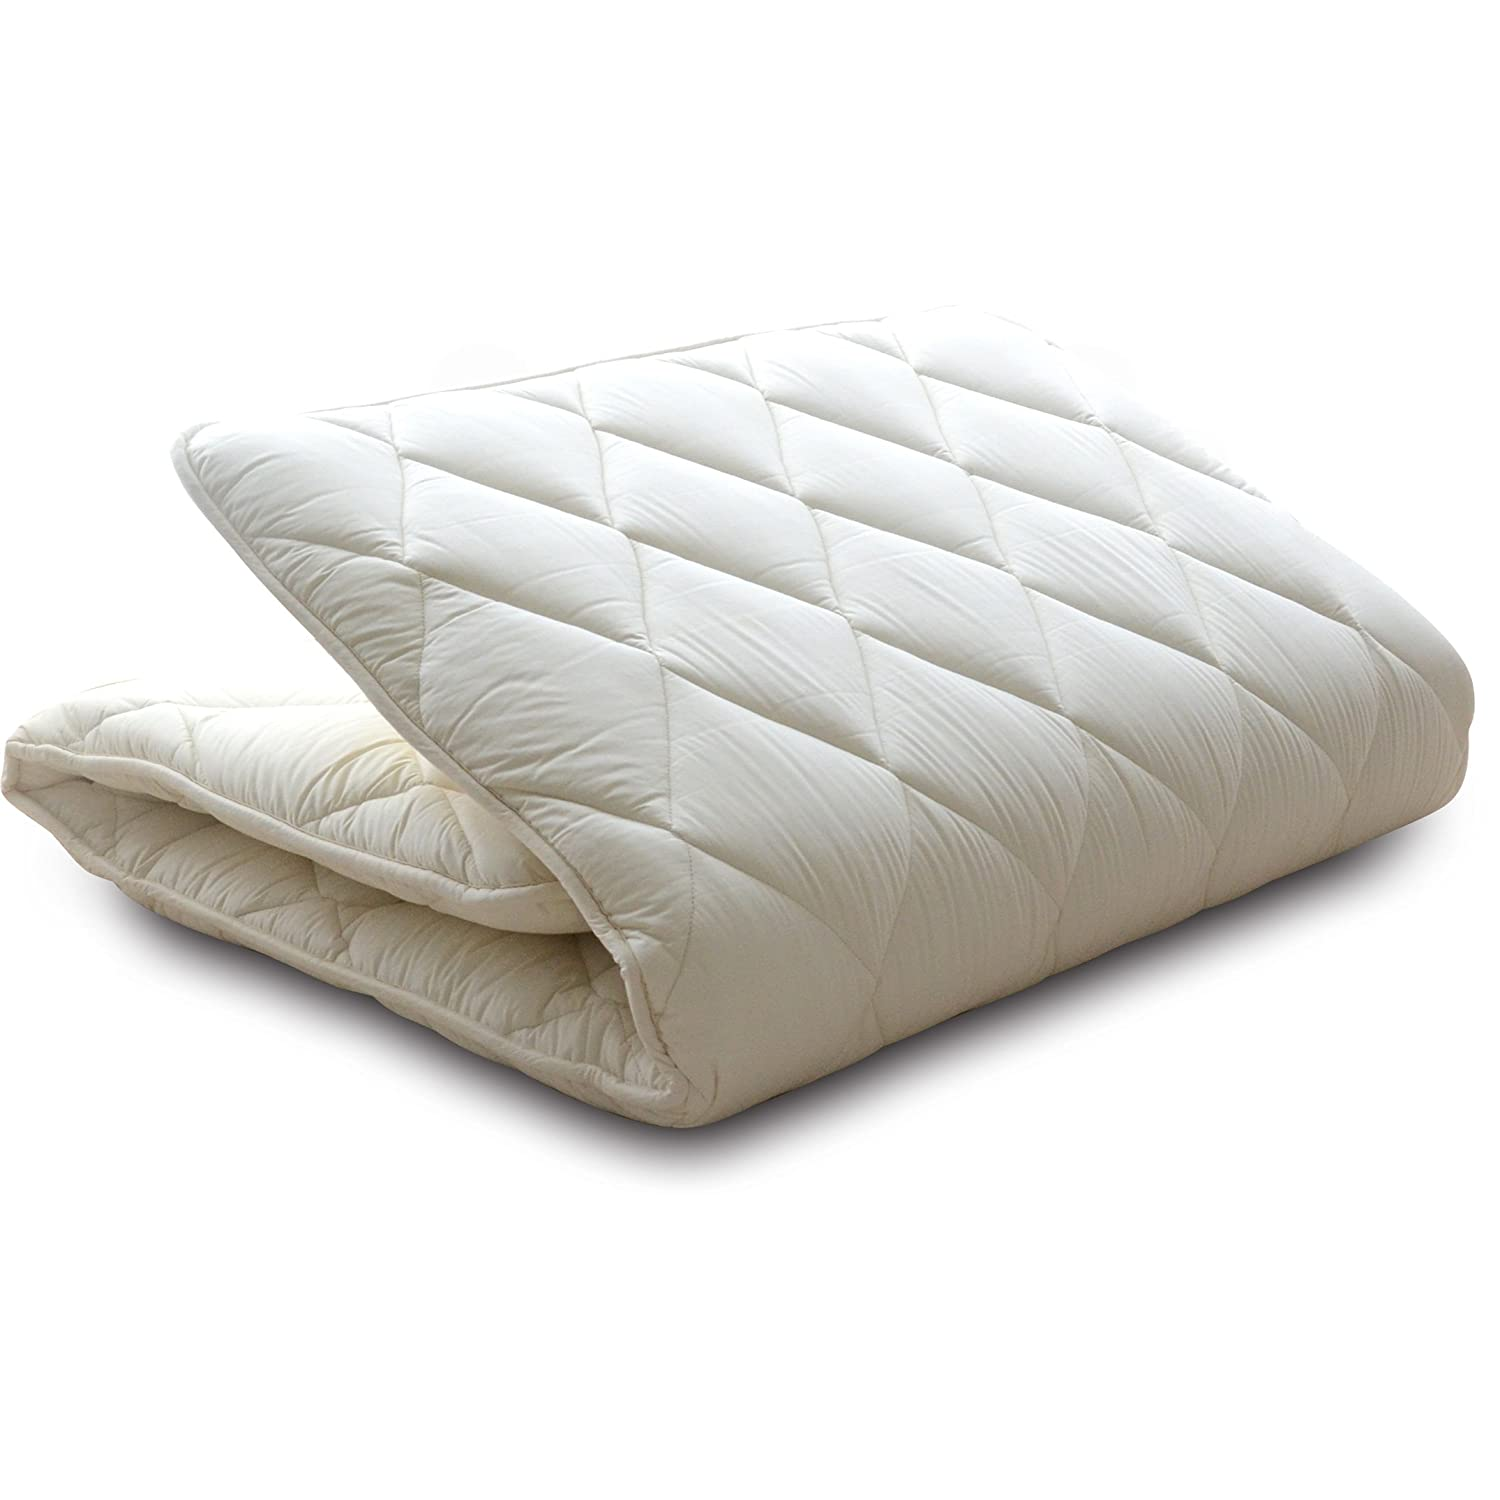 Best futon mattress #4